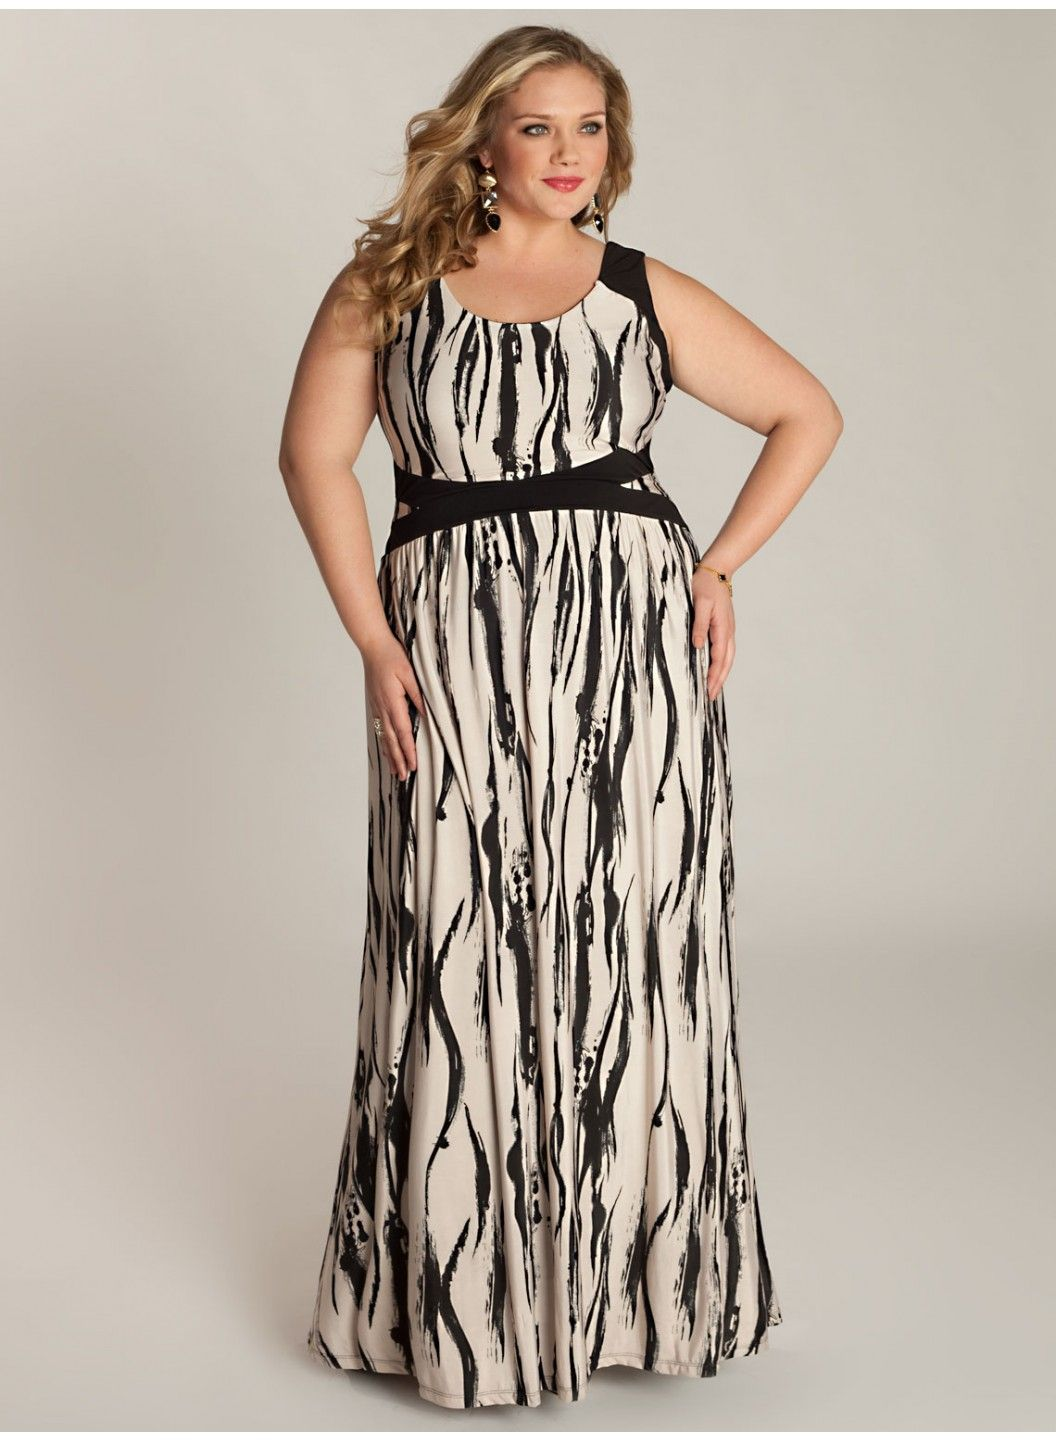 Plus size sundresses | Plus Size Maxi Dresses | Pinterest | Plus ...